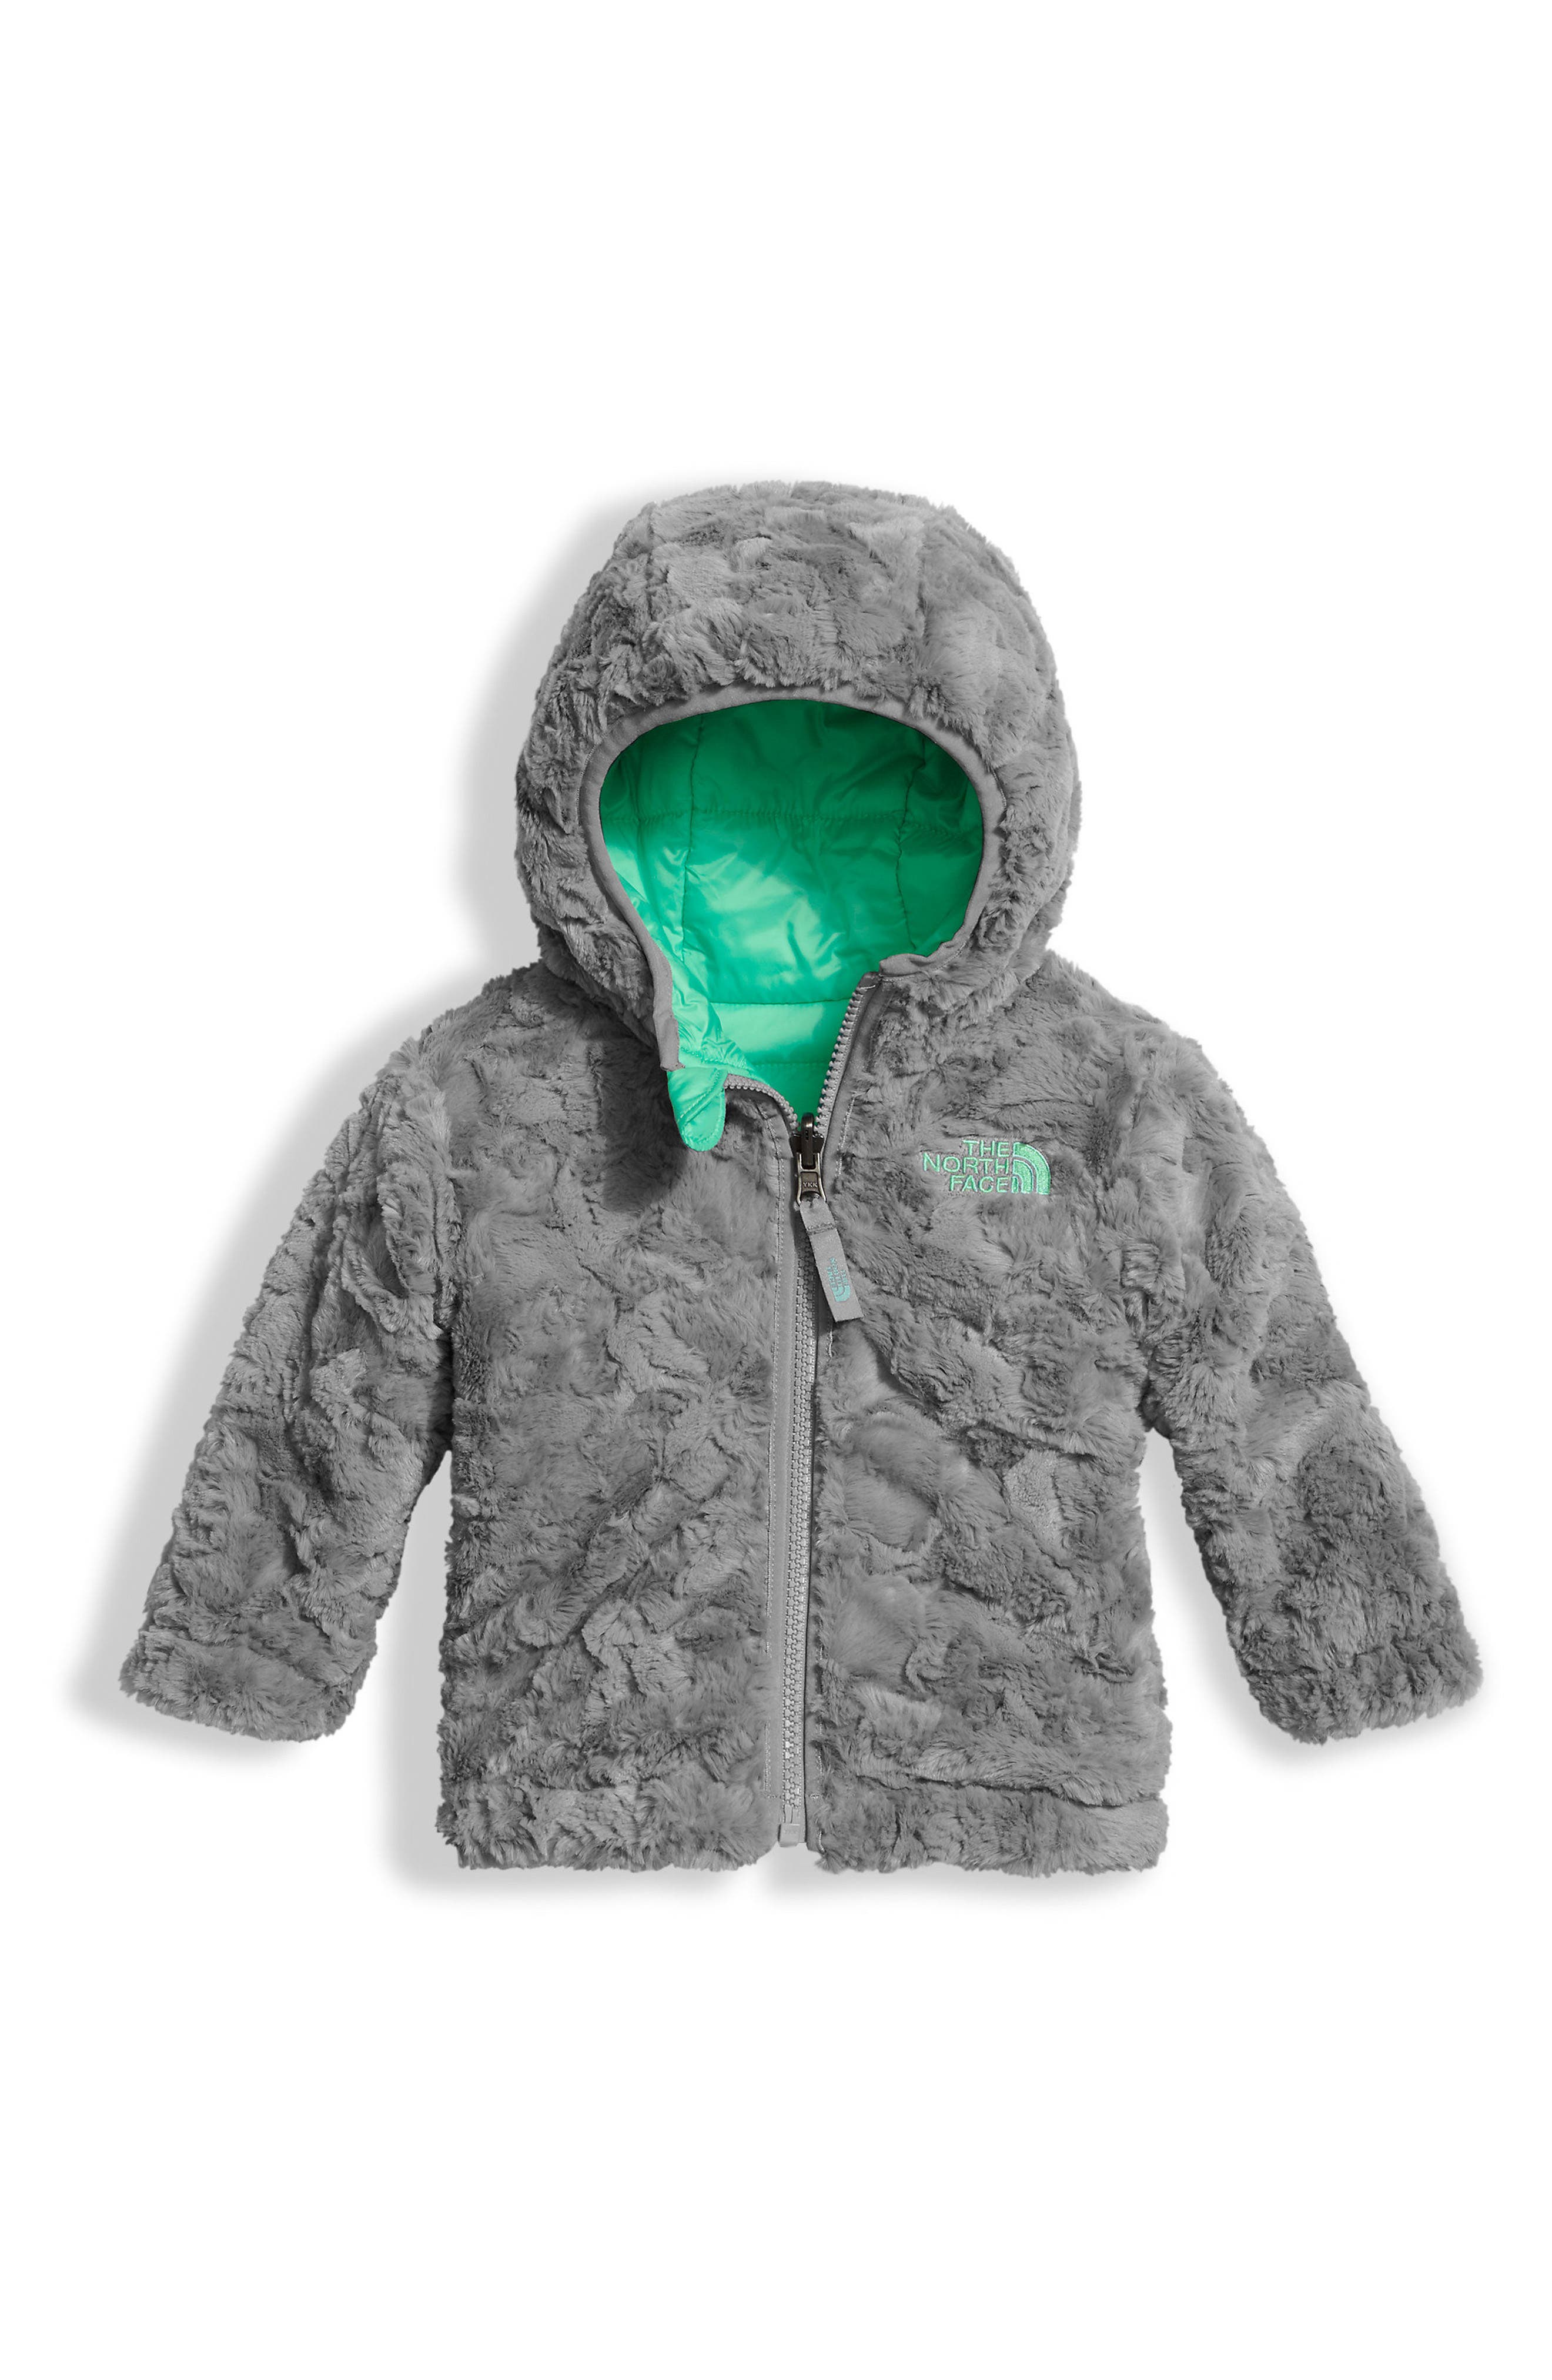 'Mossbud' Reversible Water Repellent Jacket,                             Alternate thumbnail 2, color,                             310